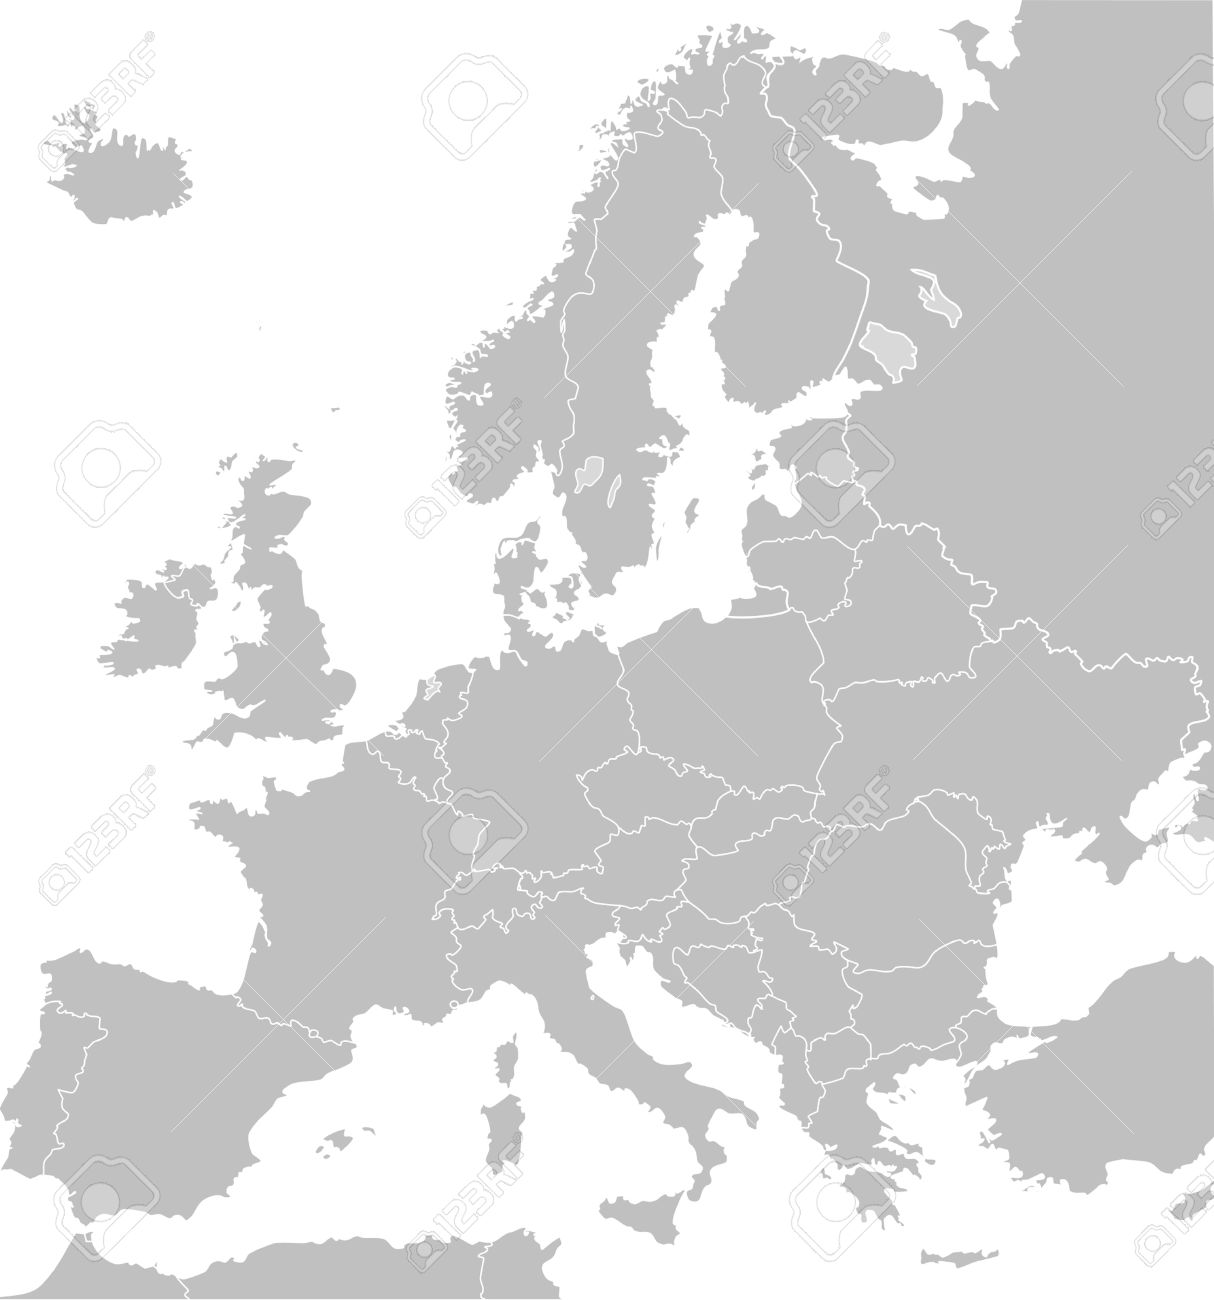 Illustrated map of Europe in grey or grey with borders of countries; white background. - 9072082